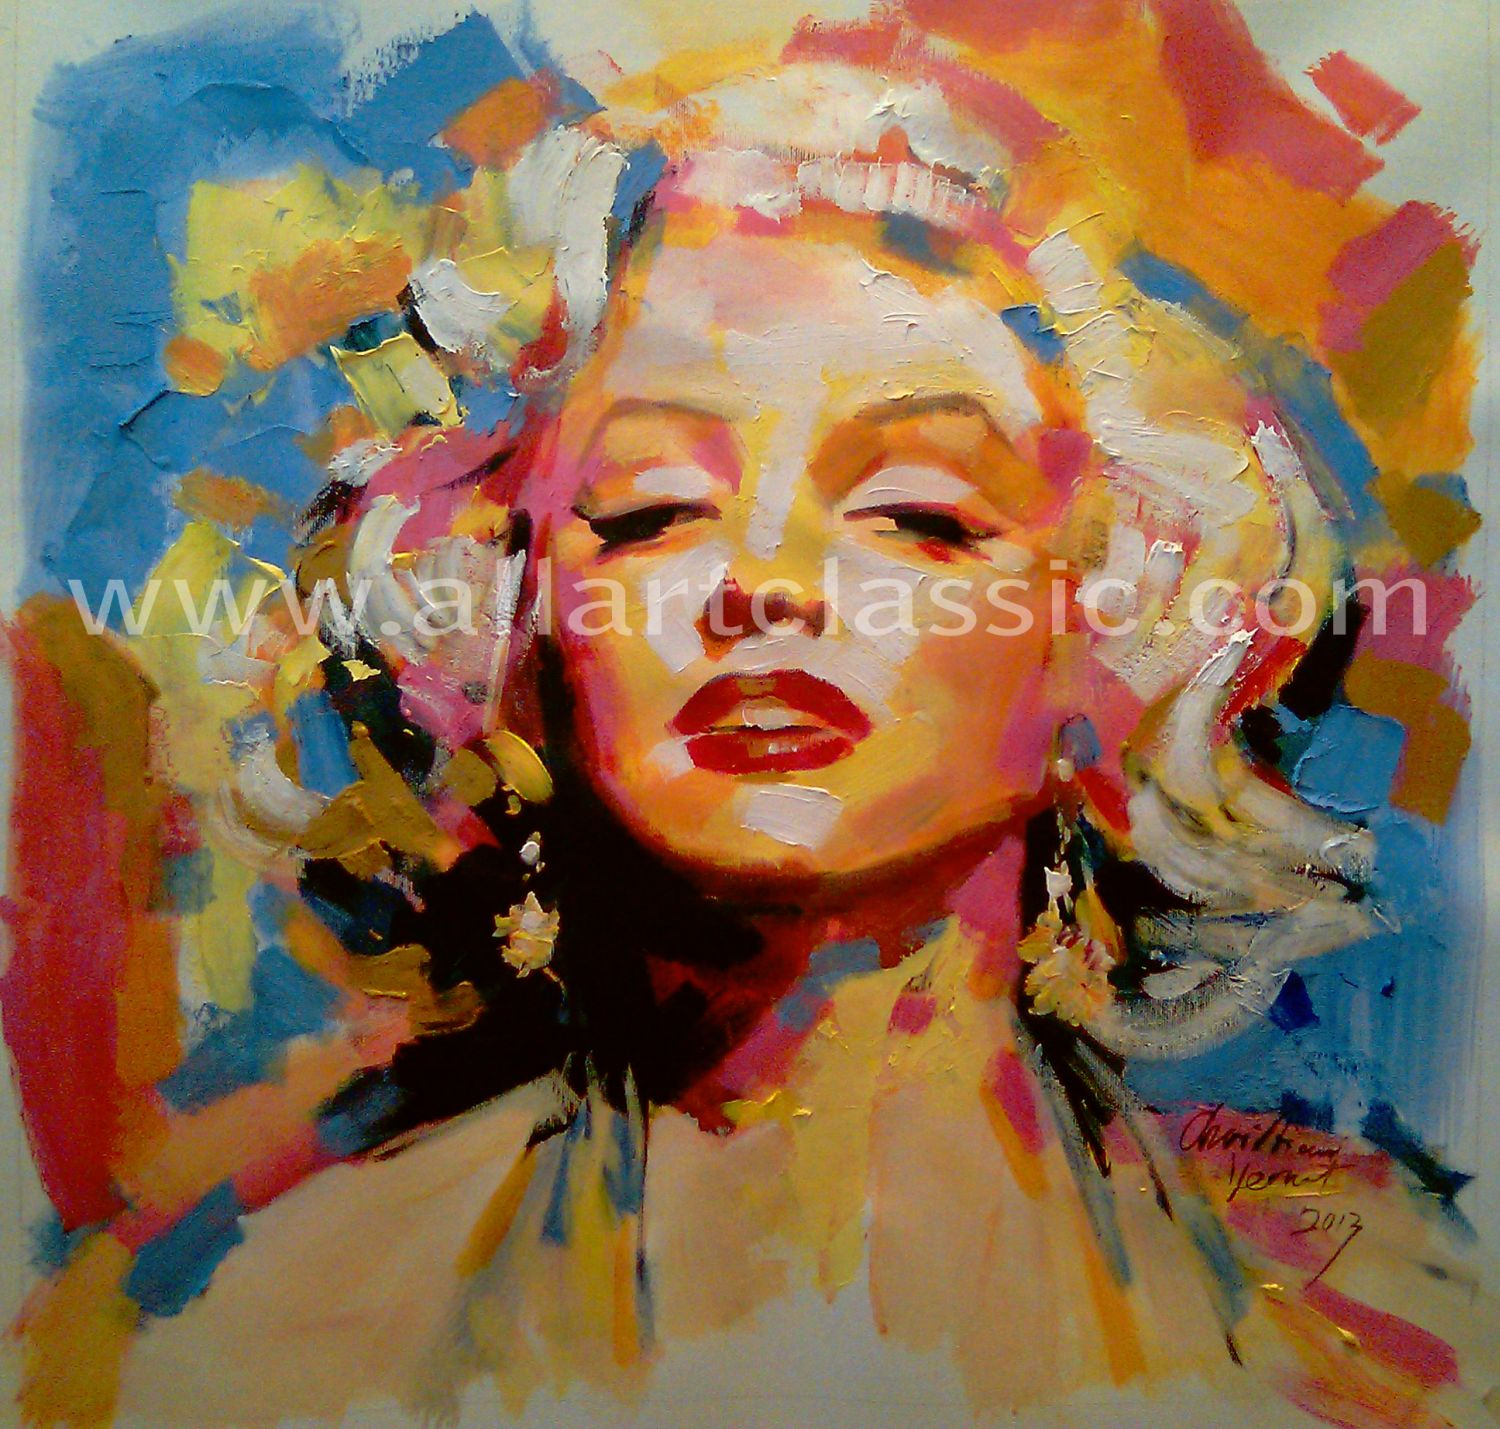 Original Oil Painting - Portrait of Marilyn